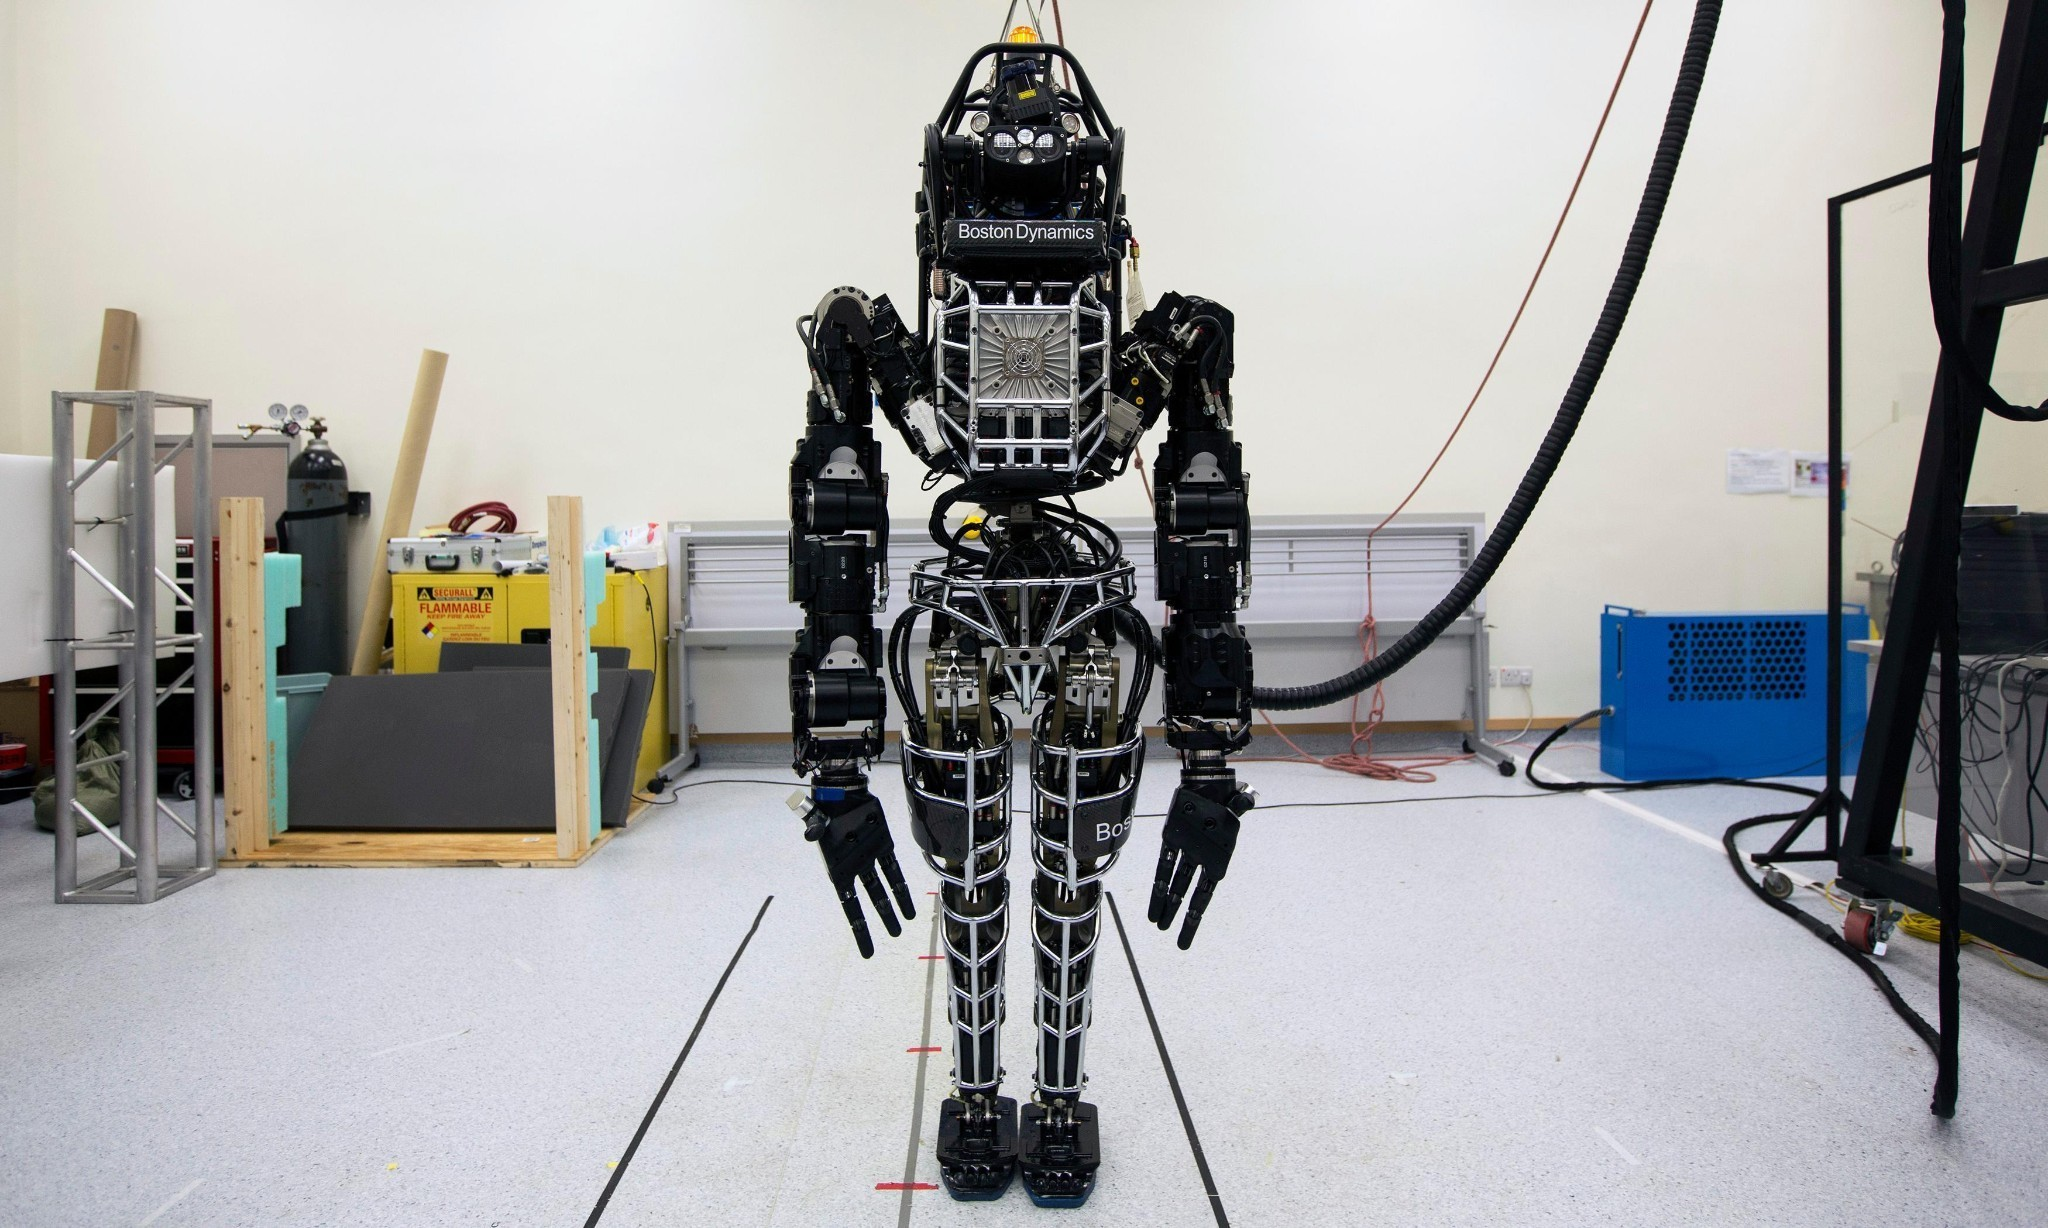 Do no harm, don't discriminate: official guidance issued on robot ethics